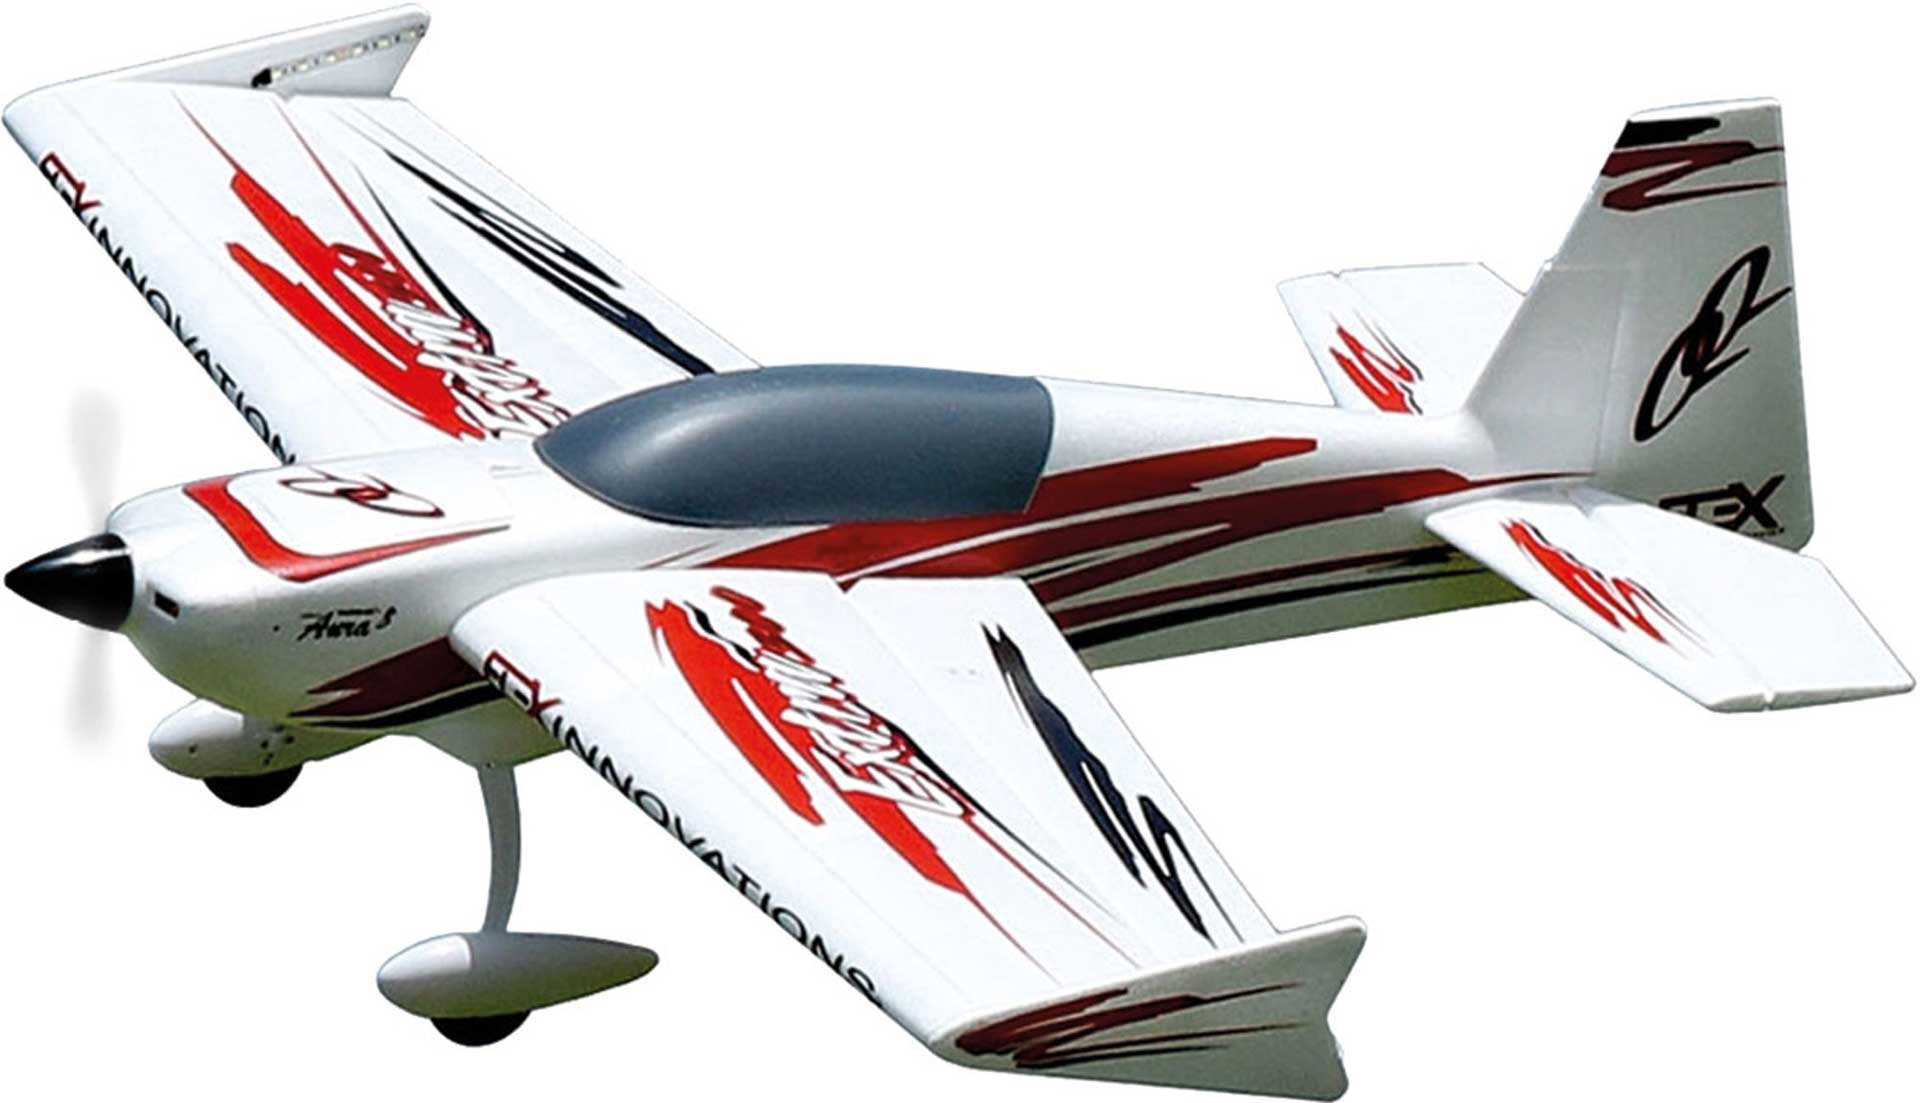 PREMIER AIRCRAFT QQ EXTRA 300 V2 RED/BLACK NIGHT SUPER PNP WITH LED LIGHTING AND AURA 8